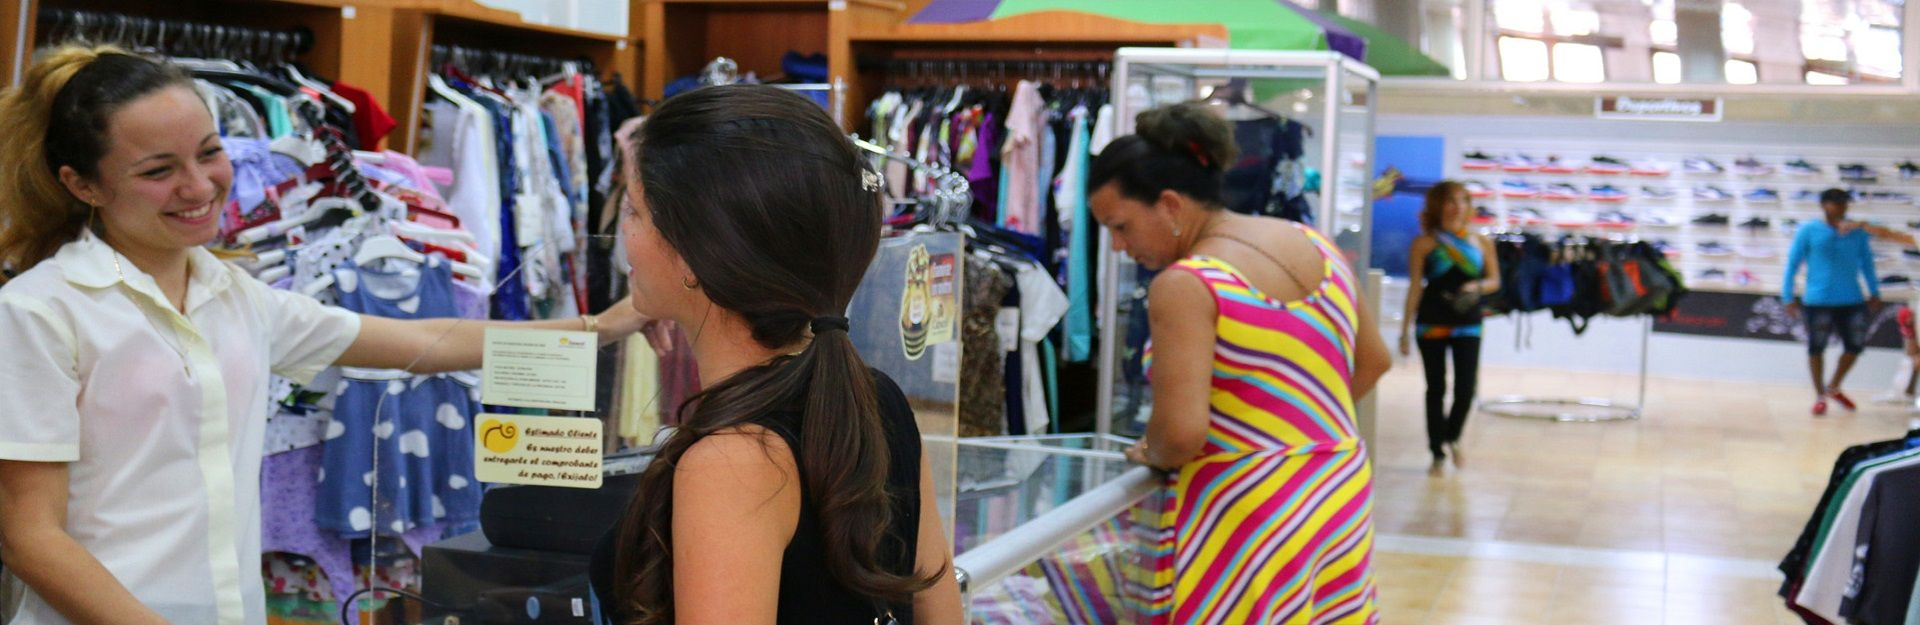 Shopping in Granma, Cuba Travel